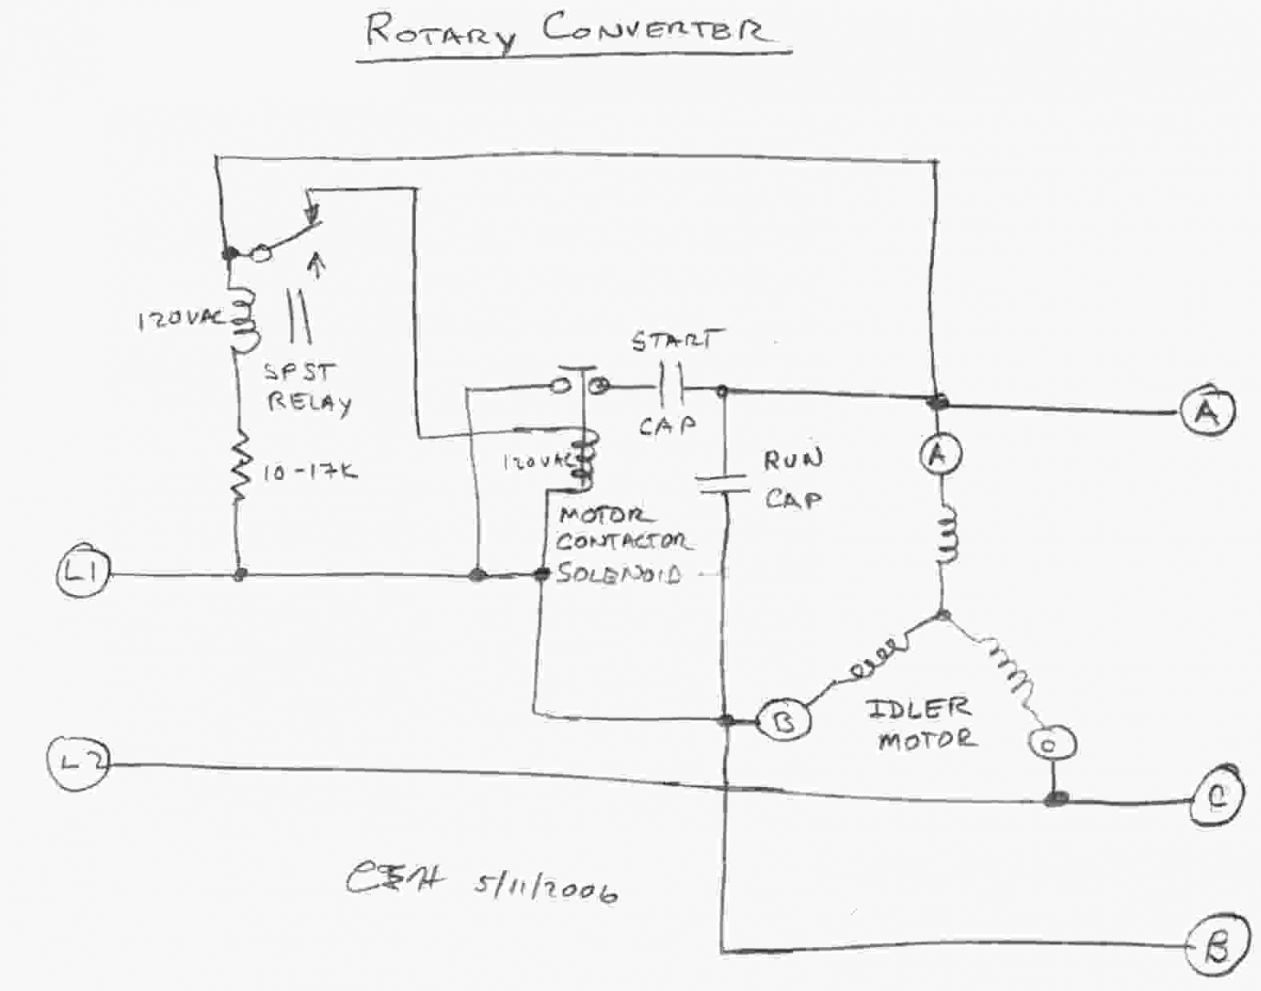 Rotary Phase Converter Wiring Diagram Free Three Pump Elegant Single Motor With Capacitor Unique